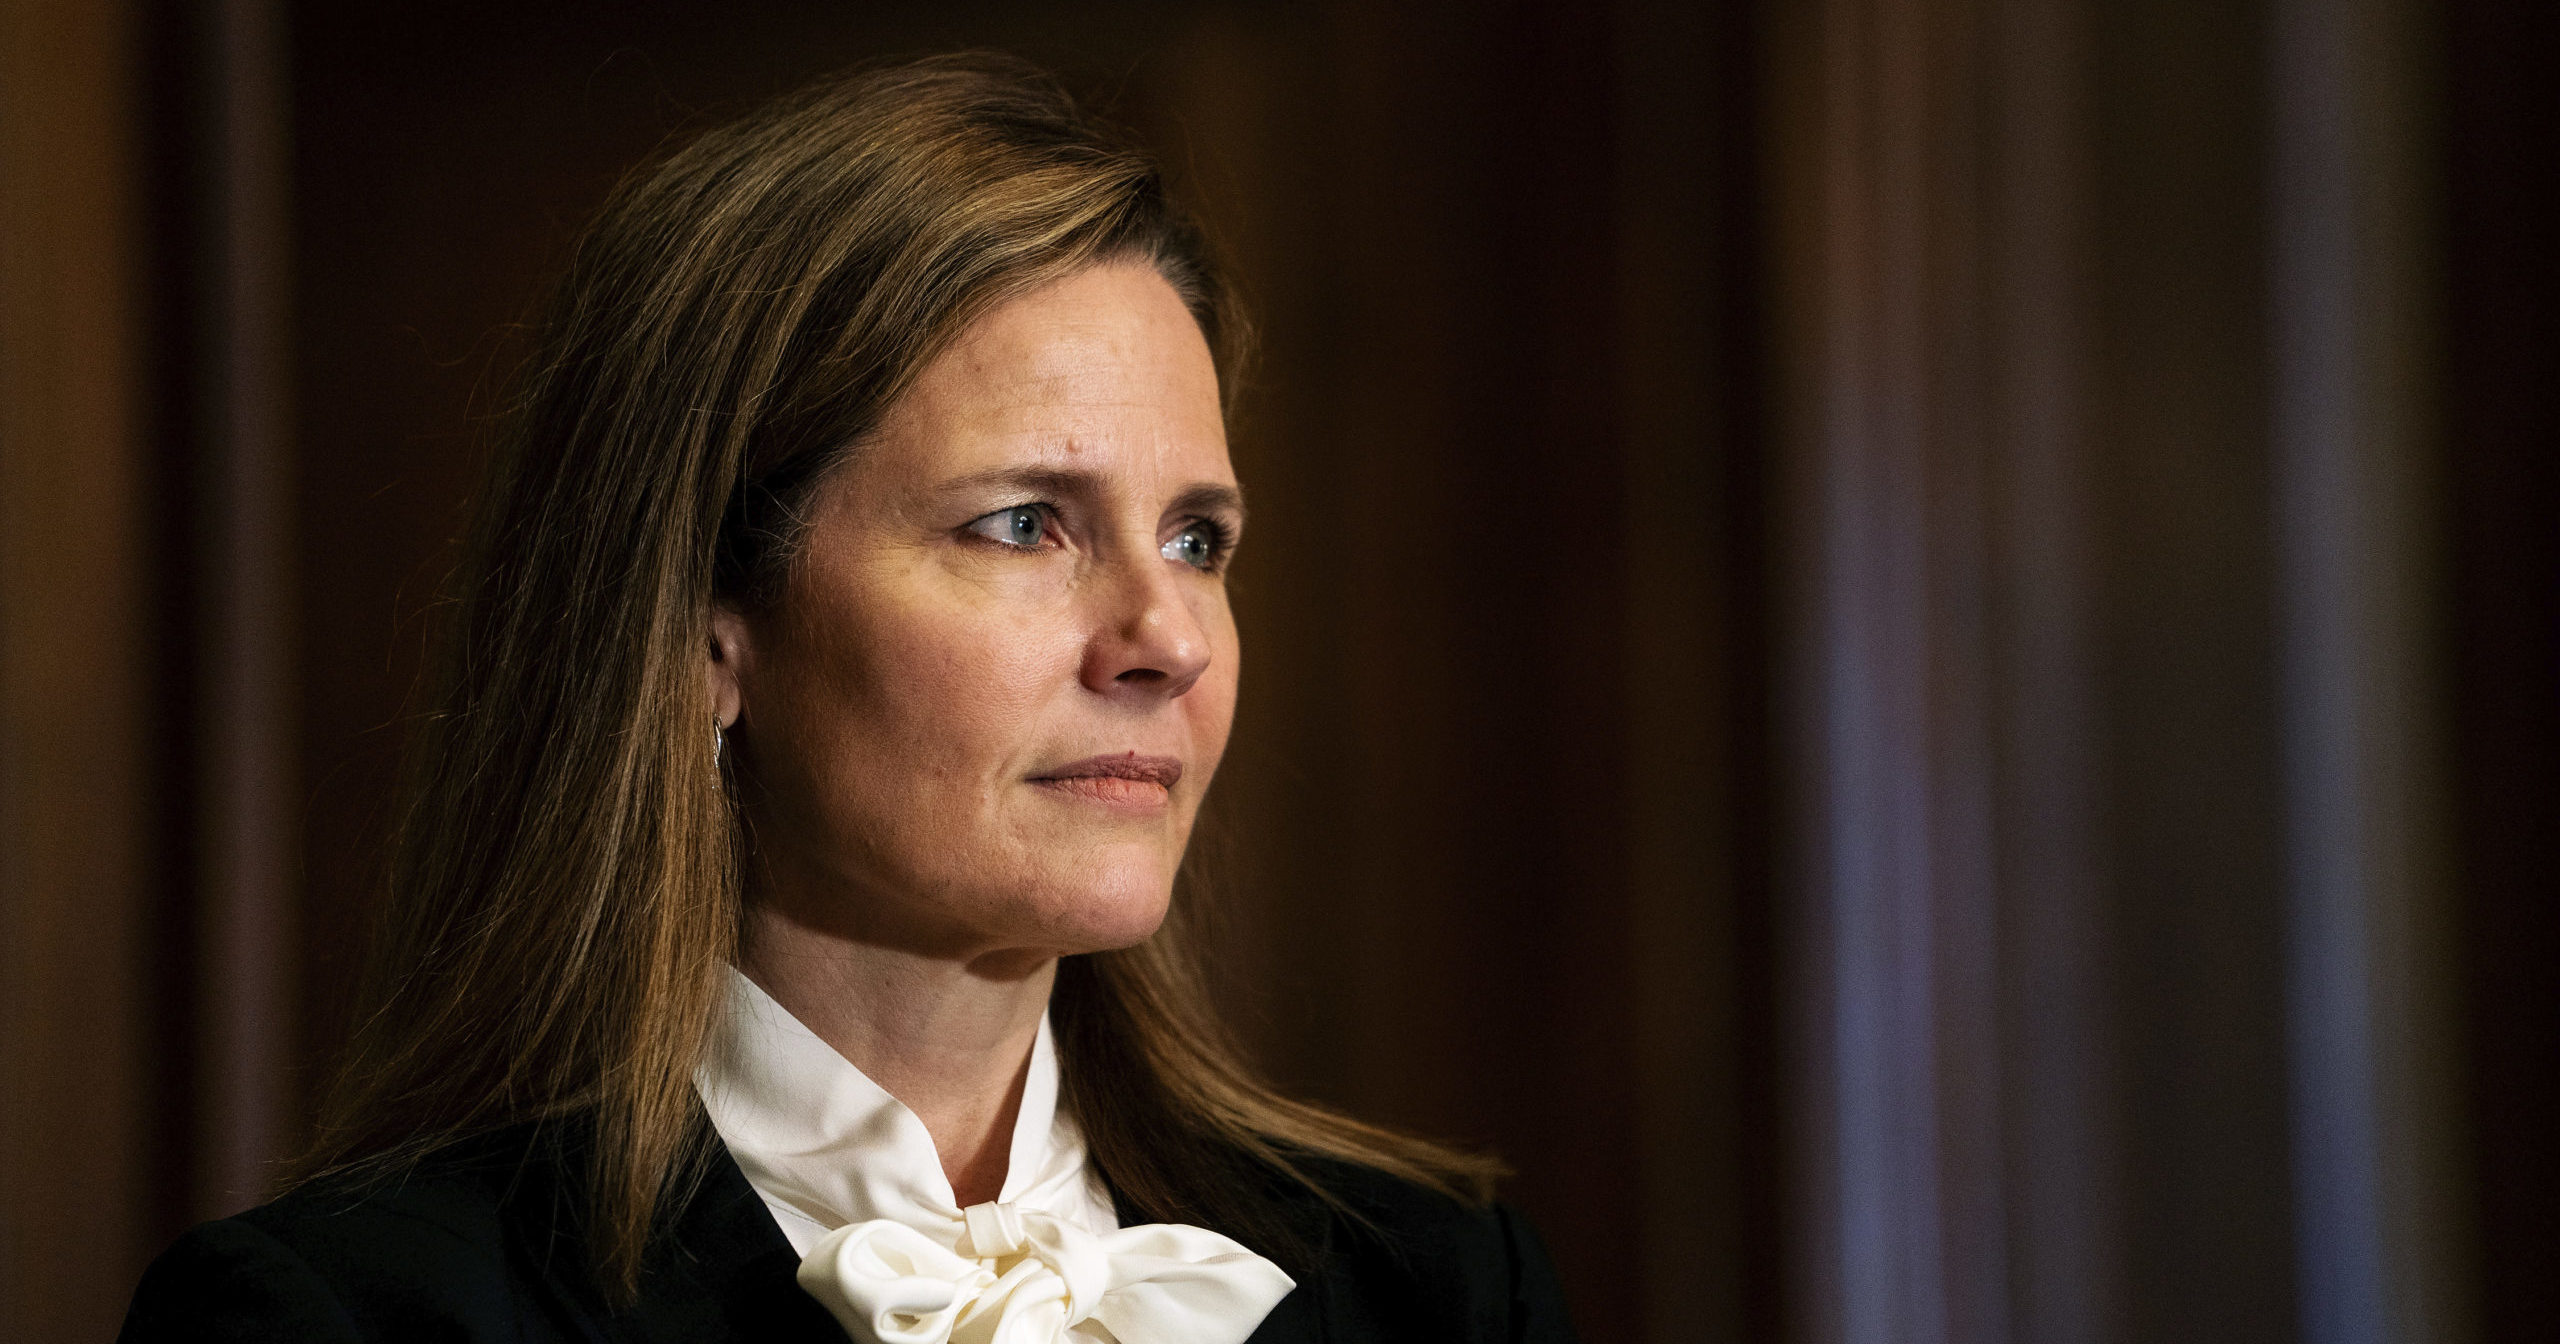 Judge Amy Coney Barrett, President Donald Trump's nominee for the Supreme Court, meets with Sen. Josh Hawley on Capitol Hill in Washington, D.C., on Oct. 1, 2020.